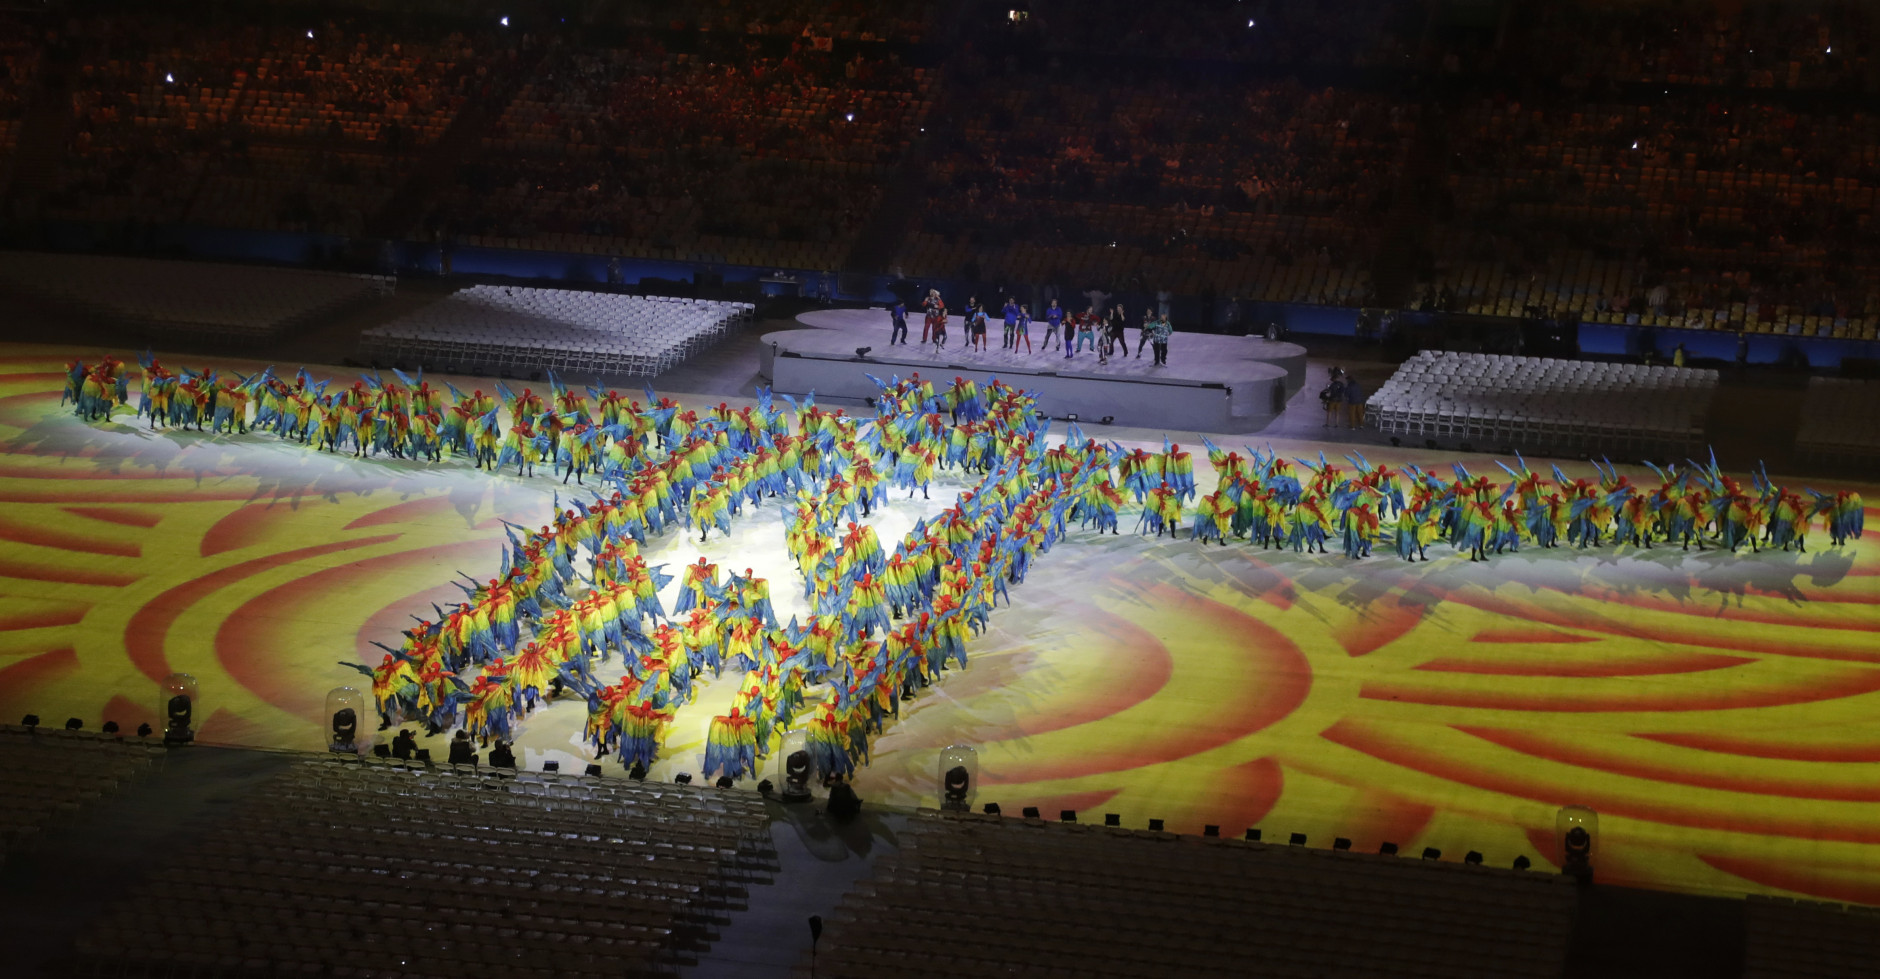 Performers stand in formation of the Christ the Redeemer during the closing ceremony in the Maracana stadium at the 2016 Summer Olympics in Rio de Janeiro, Brazil, Sunday, Aug. 21, 2016. (AP Photo/Chris Carlson)